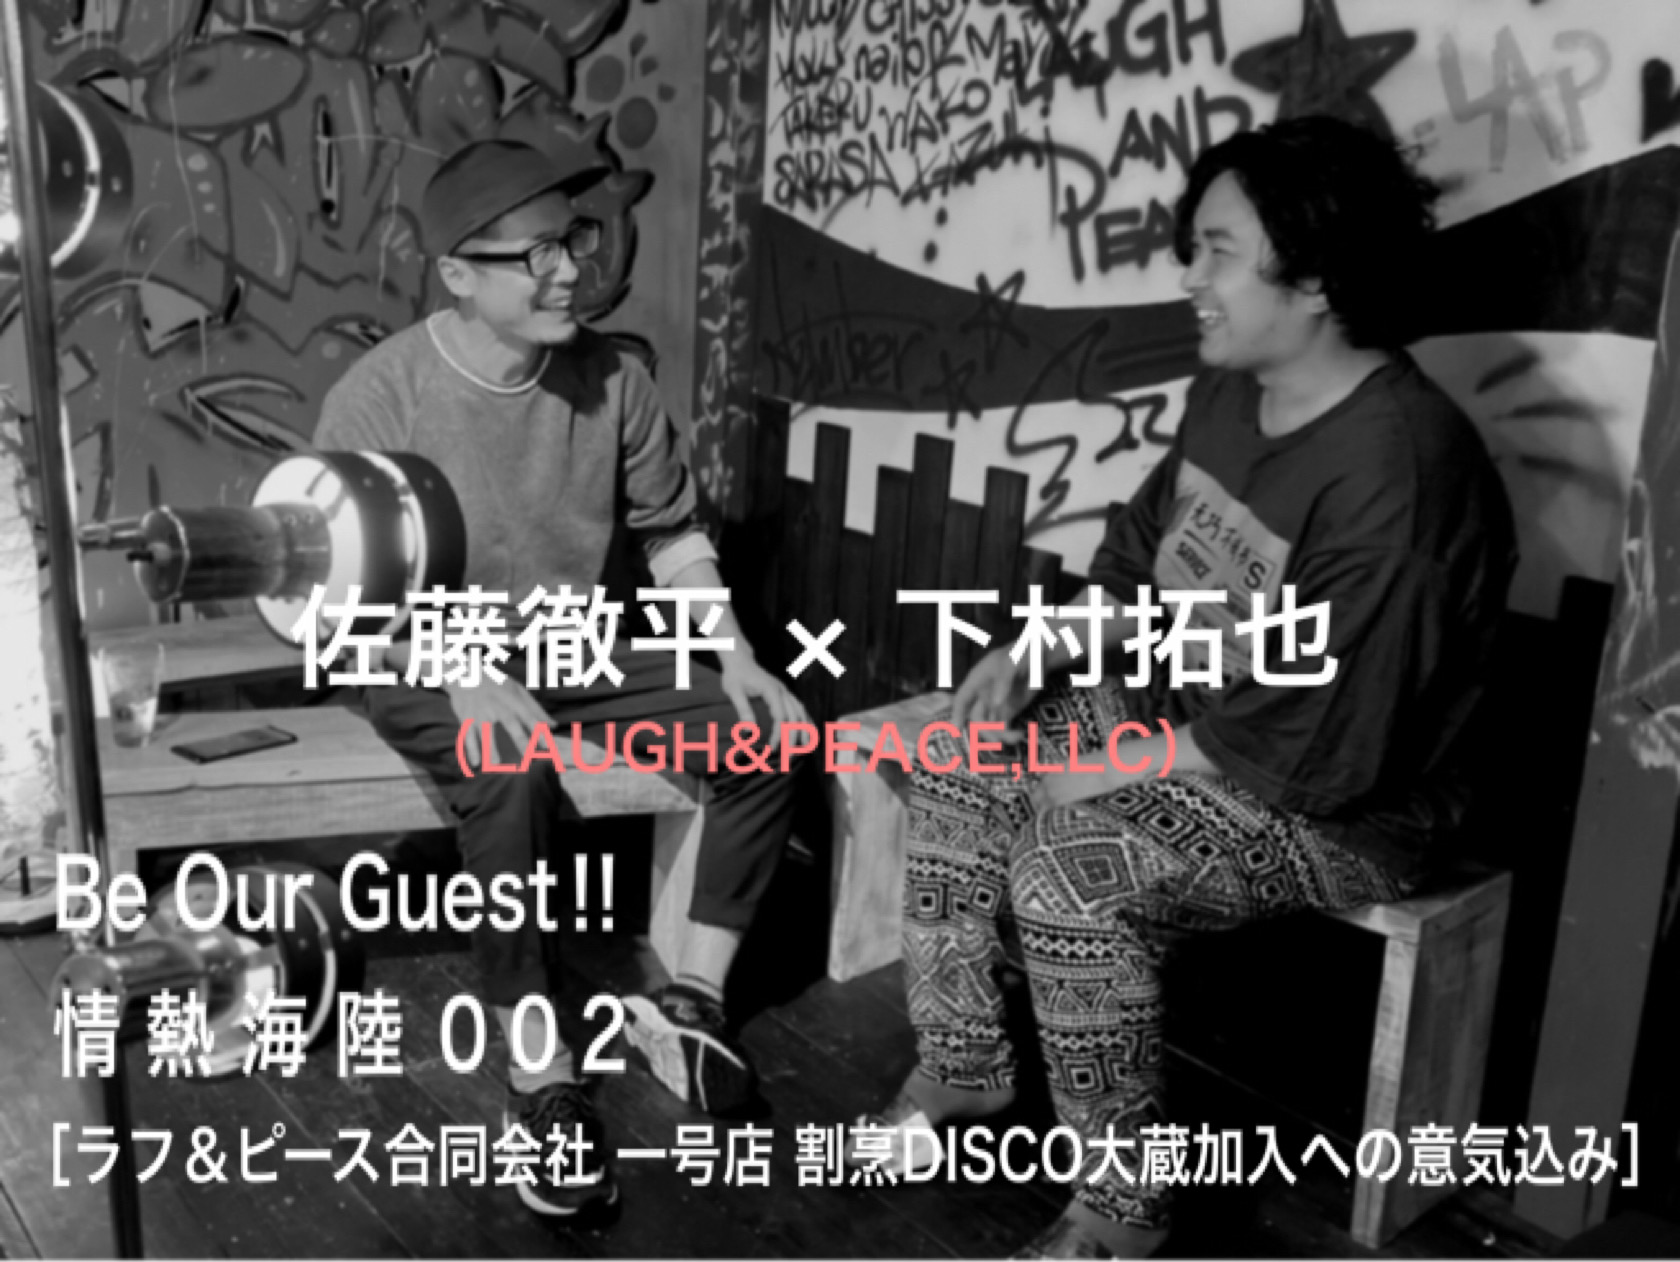 『Be Our Guest!!』情熱海陸:002【大蔵newcomer!さっち☆★】